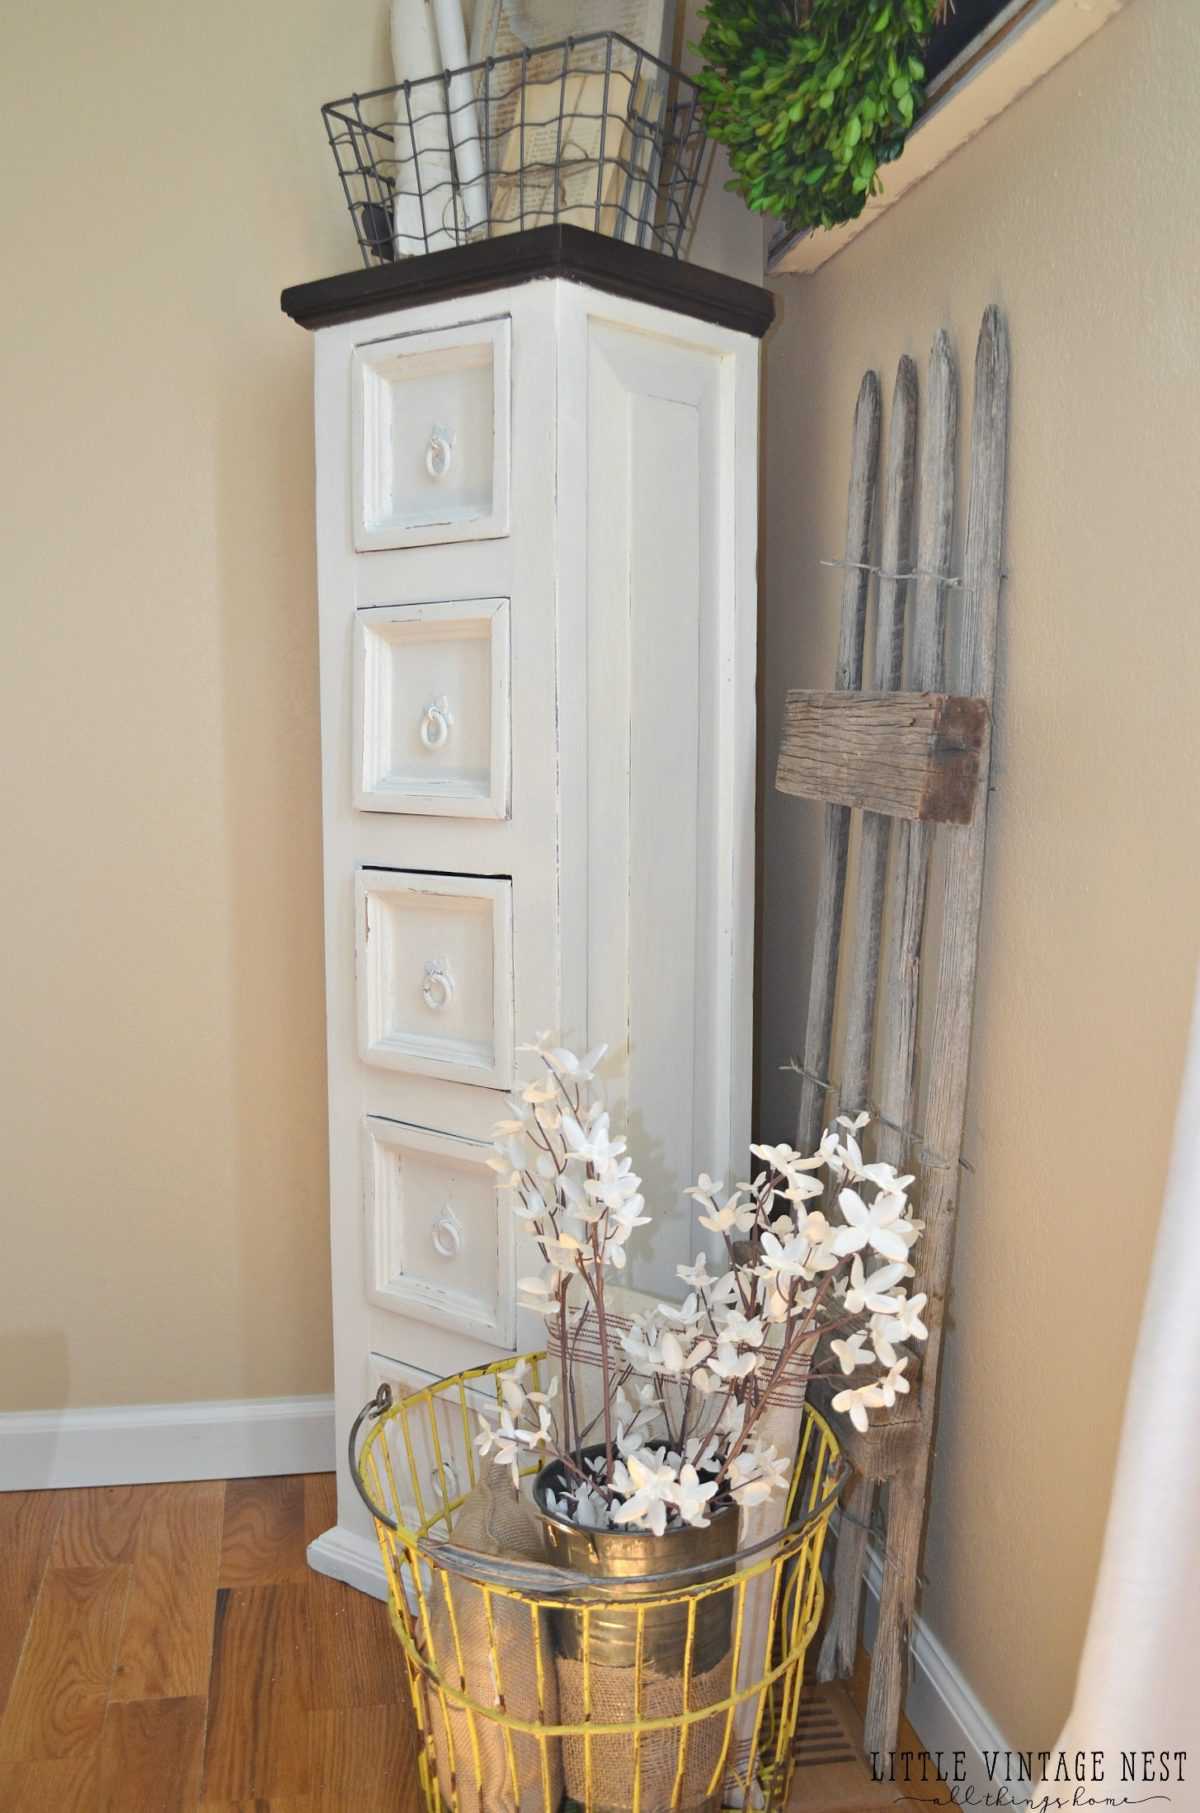 Farmhouse Dining Room Storage Cabinet - Little Vintage Nest